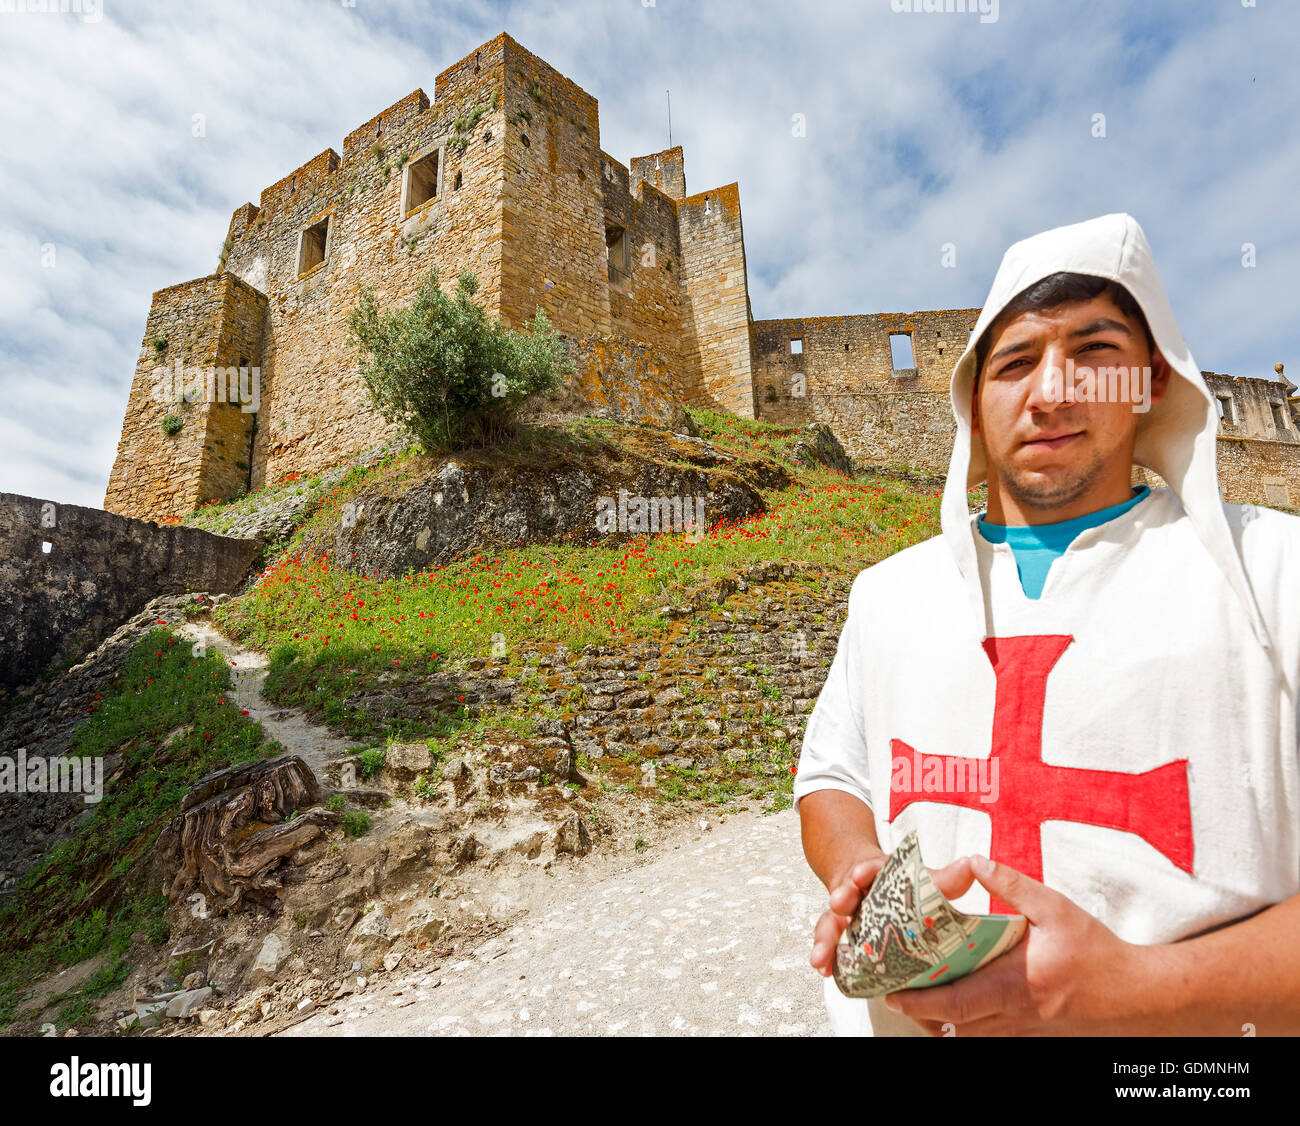 Brochure Distribution dressed as Templar front of castle, fortress of Tomar, the castle of the Knights Templar, - Stock Image